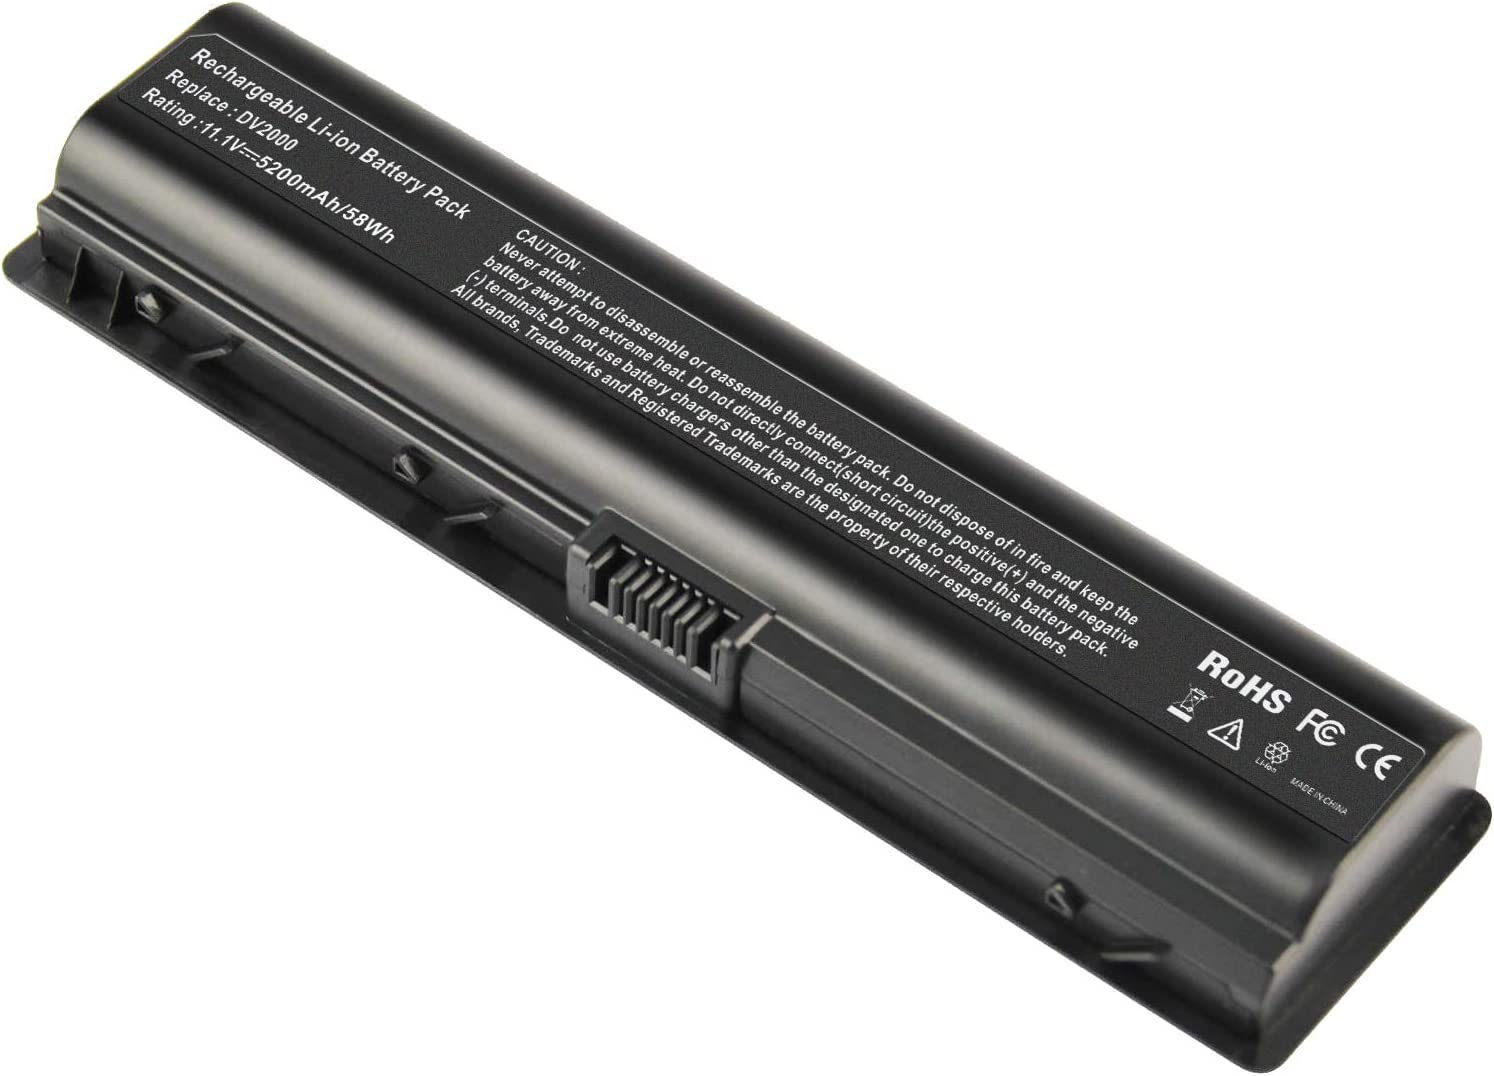 ARyee Laptop Battery Compatible with HP Pavilion DV6700 DV6500 DV6300 DV6100 DV6000 DV2700 DV2500 DV2100 DV2000, fit 446506-001 441243-001 441611-001 446507-001 452057-001 462853-001 HSTNN-IB31 W20C